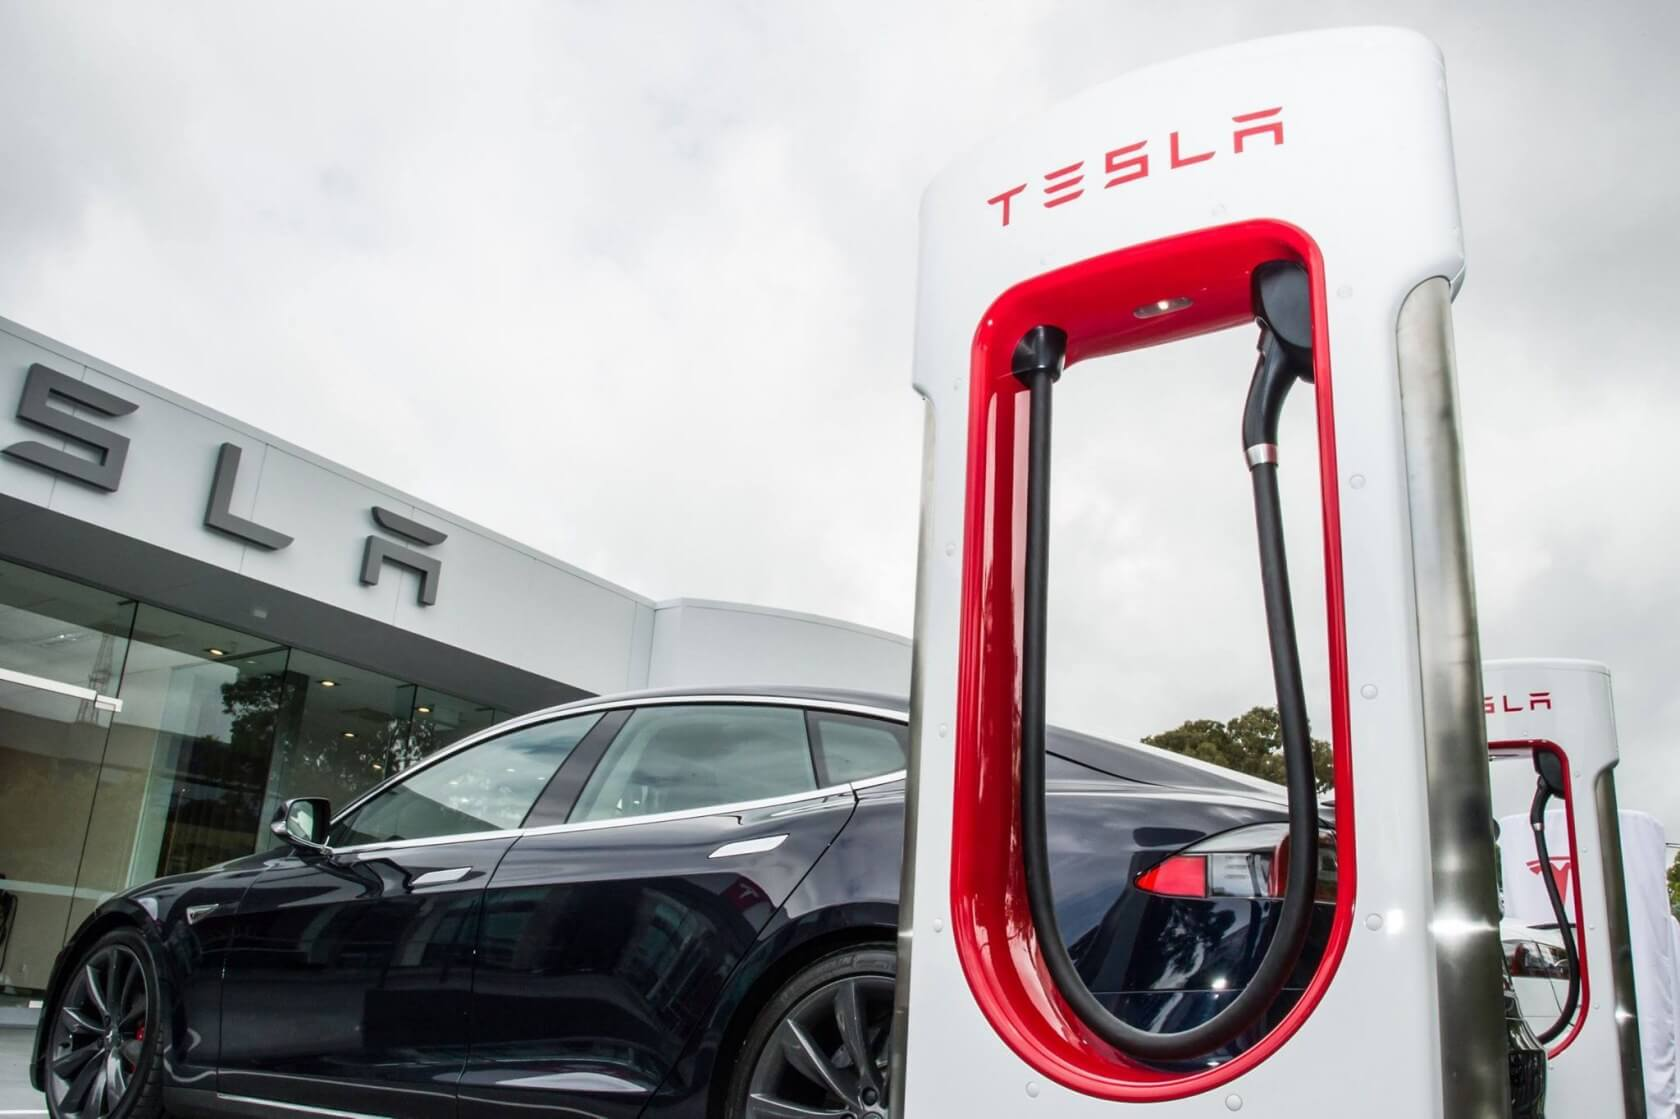 Tesla Buyers to Lose $7500 Tax Credit; Deadline Is October 15